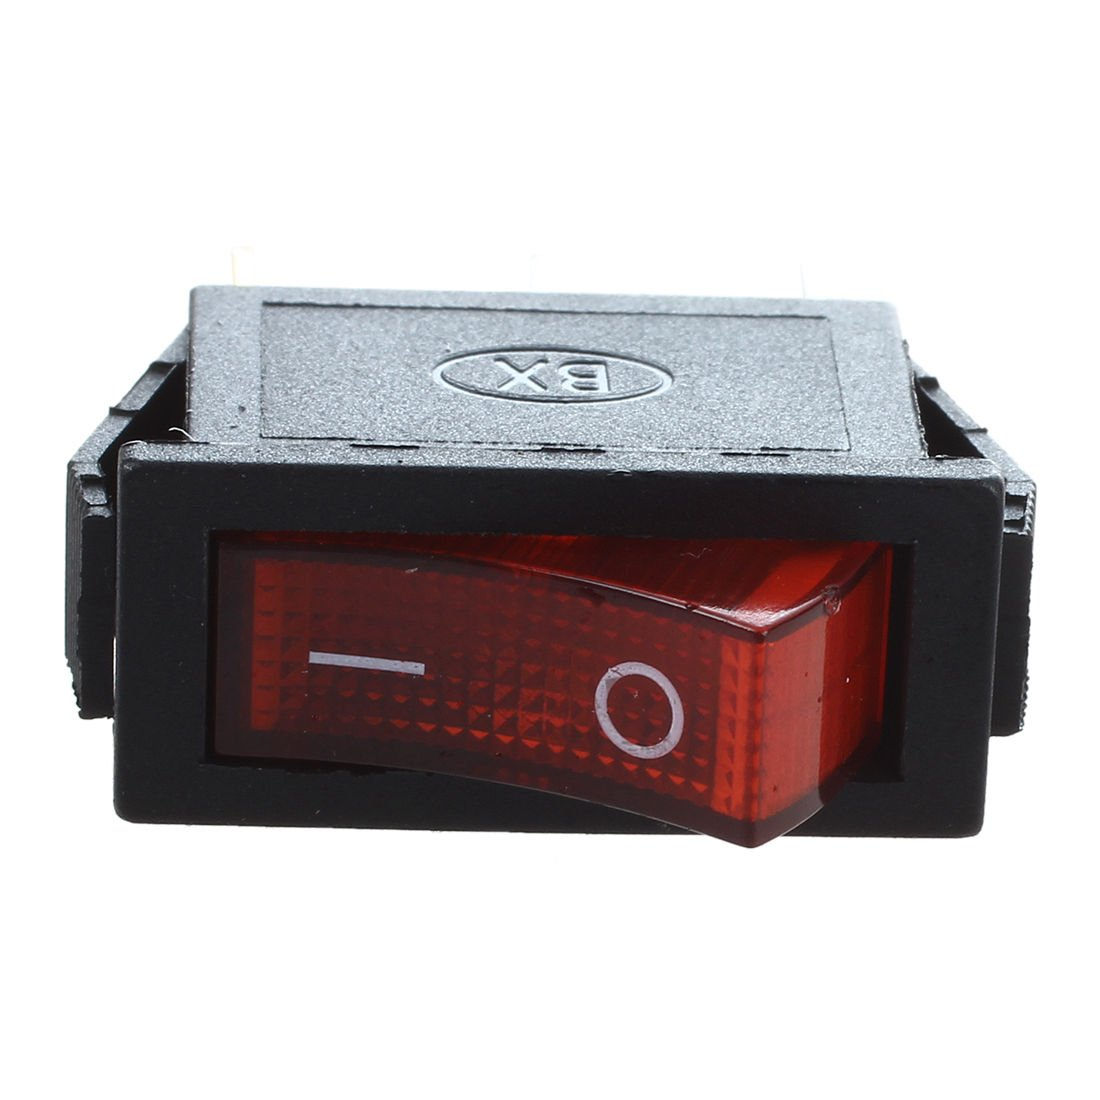 Nrpfell Interrupteur a bascule ON OFF Lumineux Bipolaire 28x10mm 250V 15A ROUGE 3 Bornes